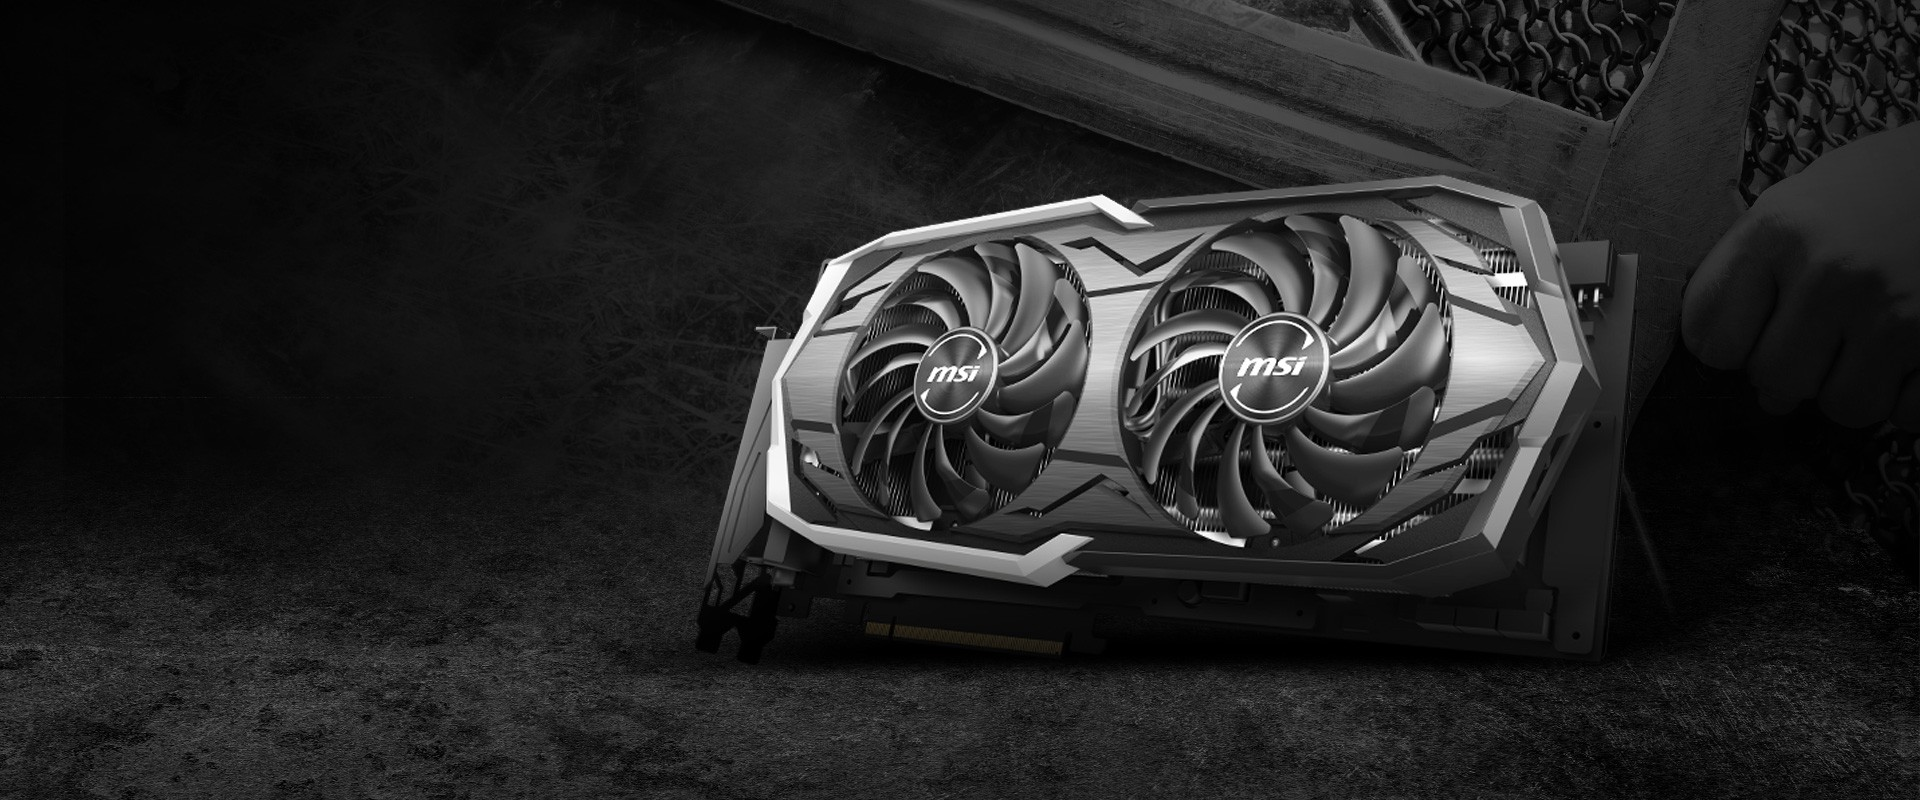 GeForce RTX 2070 ARMOR 8G | Graphics card - The world leader in